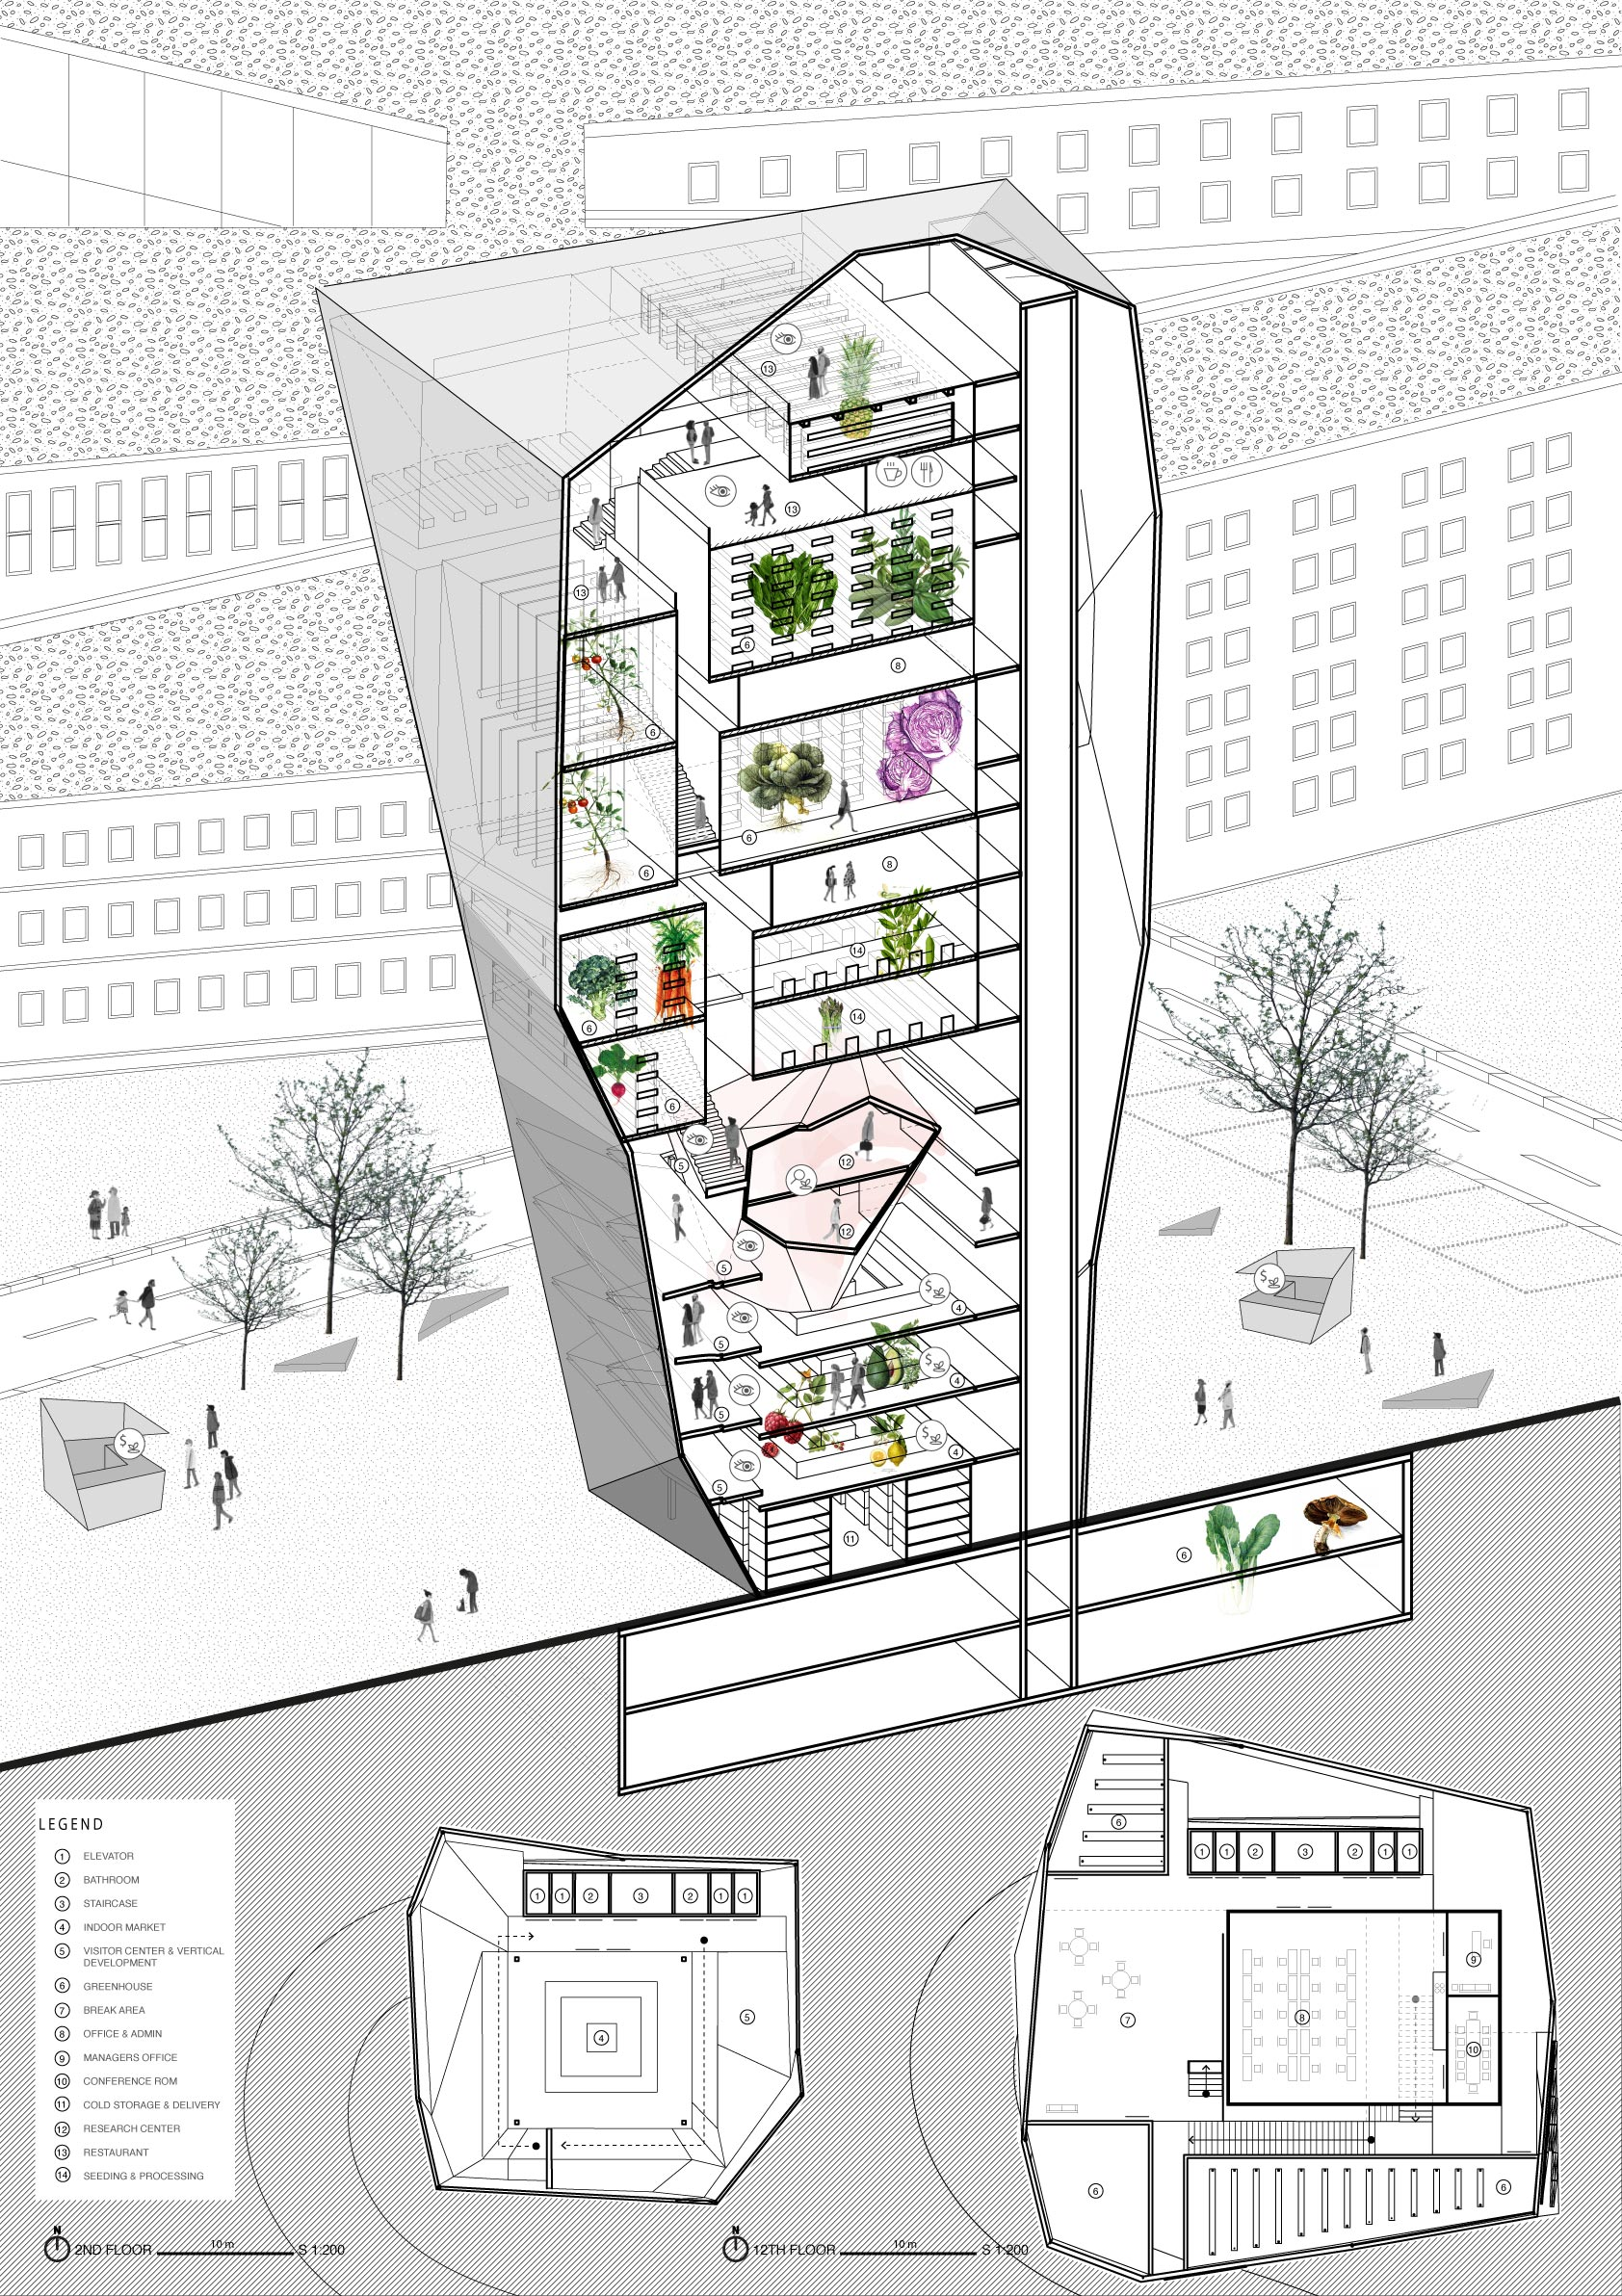 vertical farm section